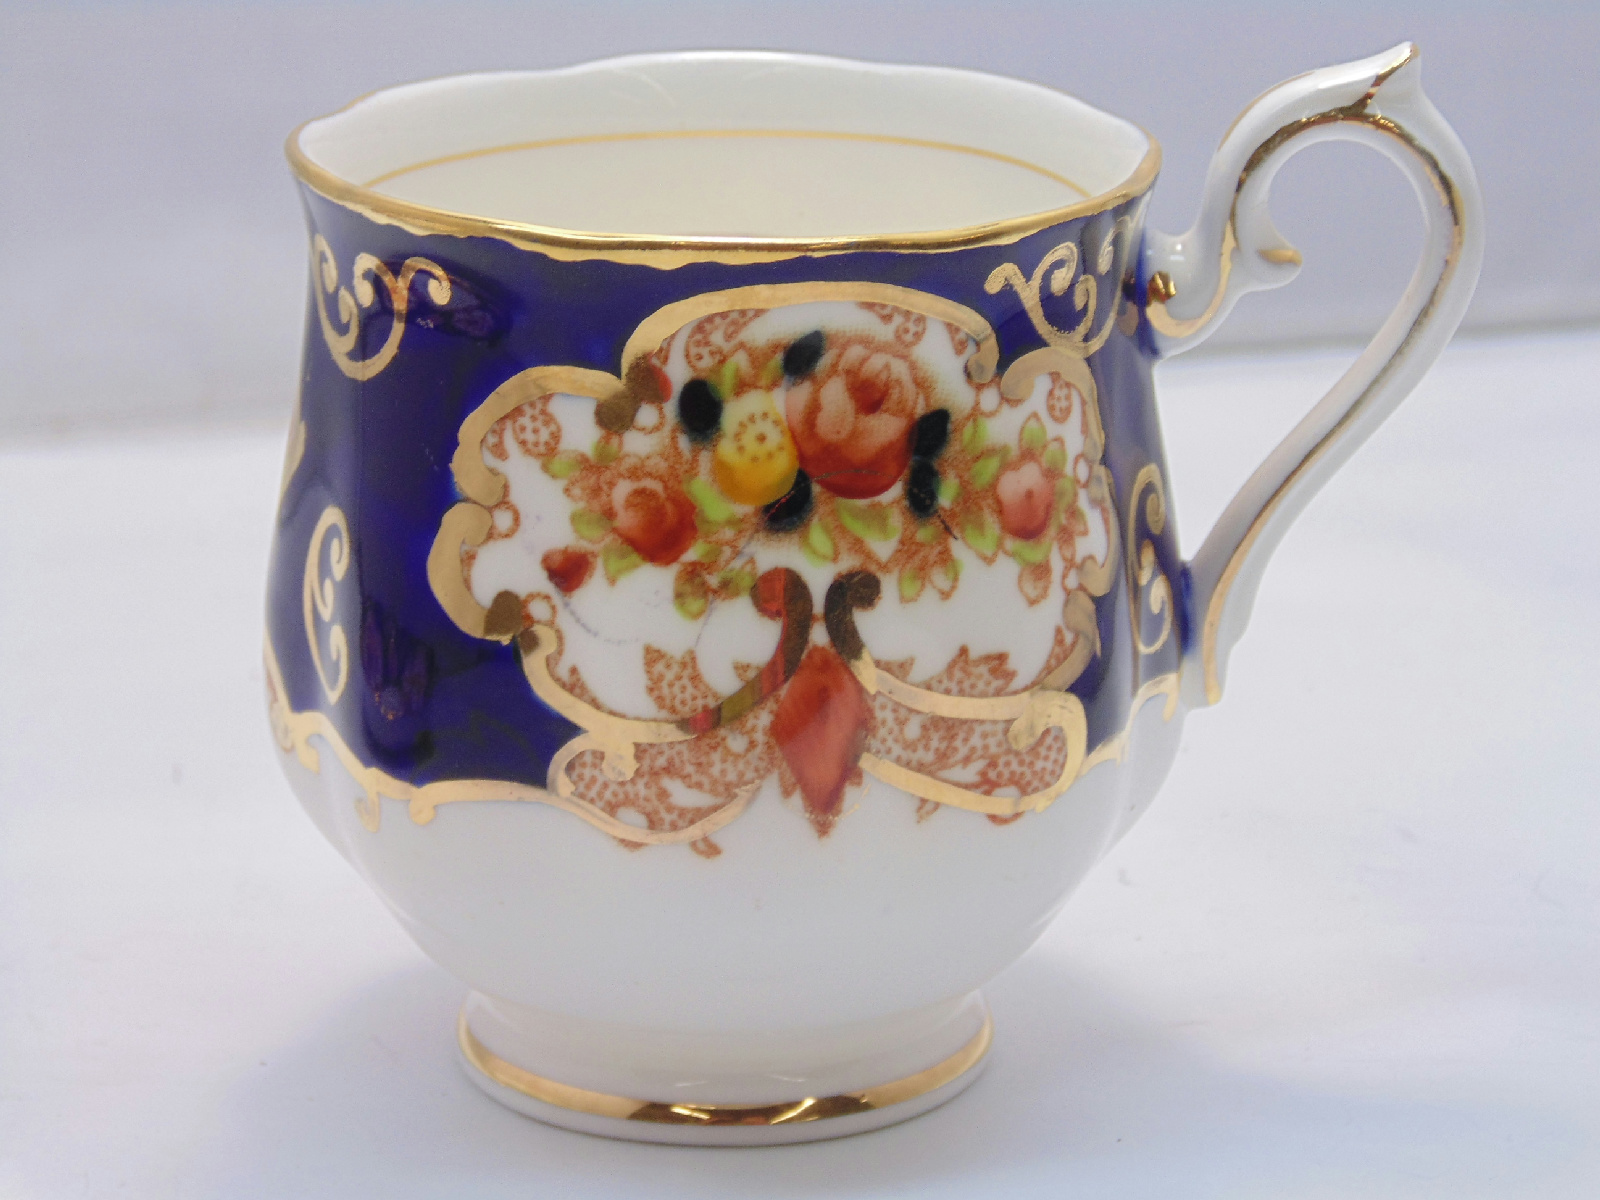 royal albert bone china england heirloom pattern tea cup saucer b ebay. Black Bedroom Furniture Sets. Home Design Ideas